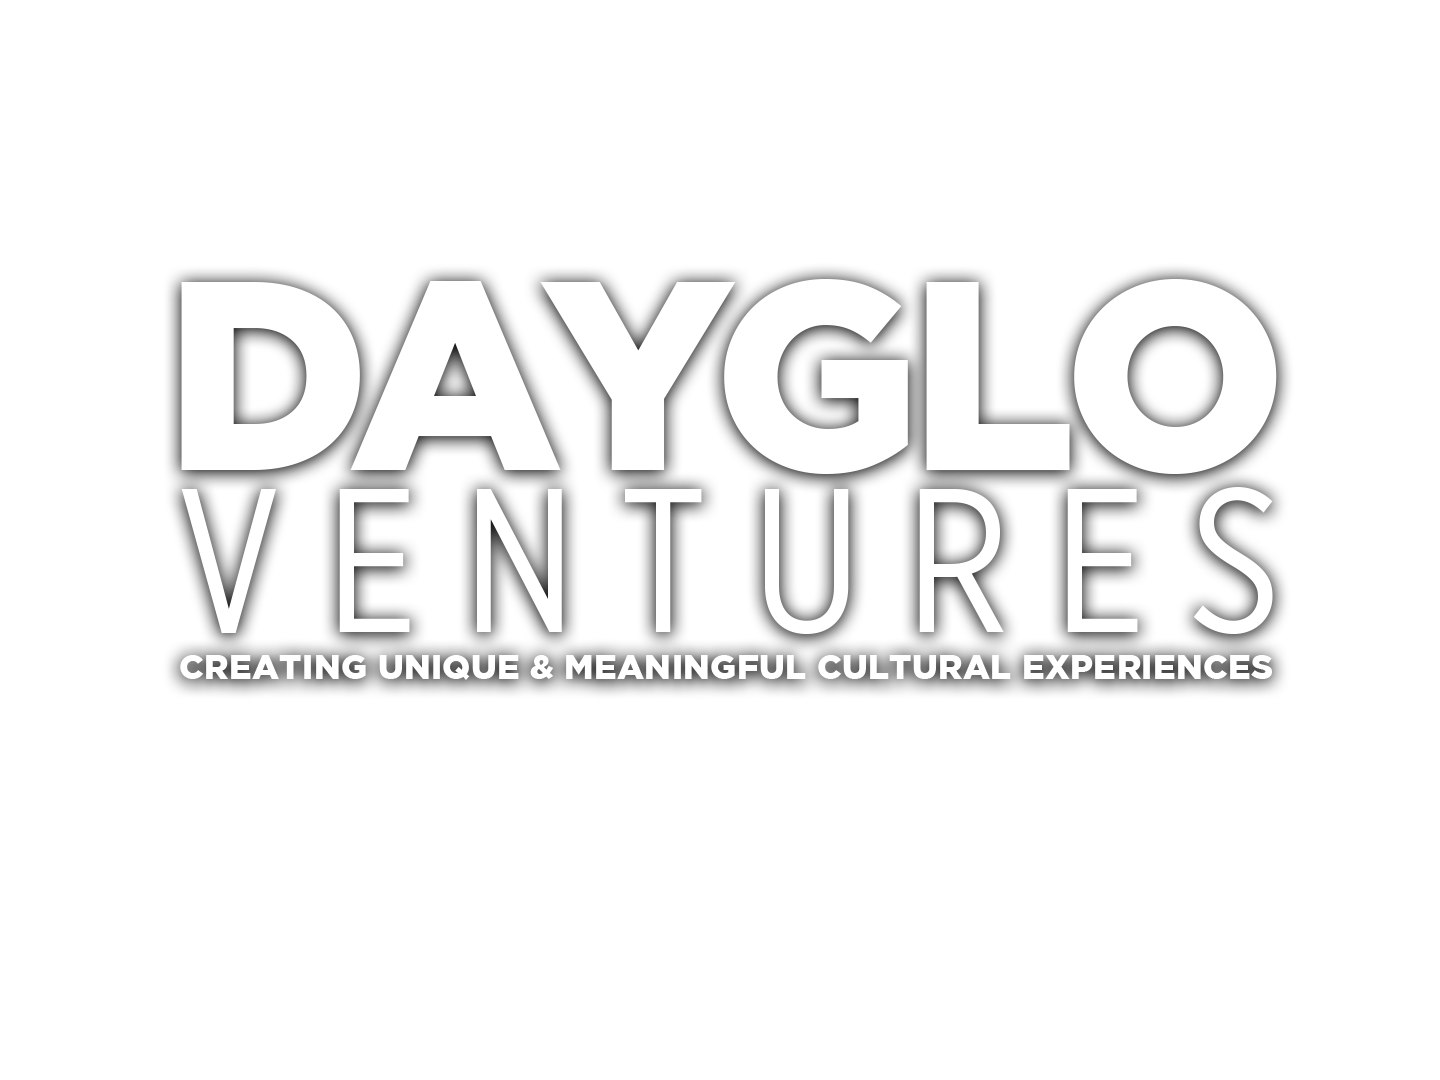 Dayglo Ventures | Creating unique and meaningful cultural experiences